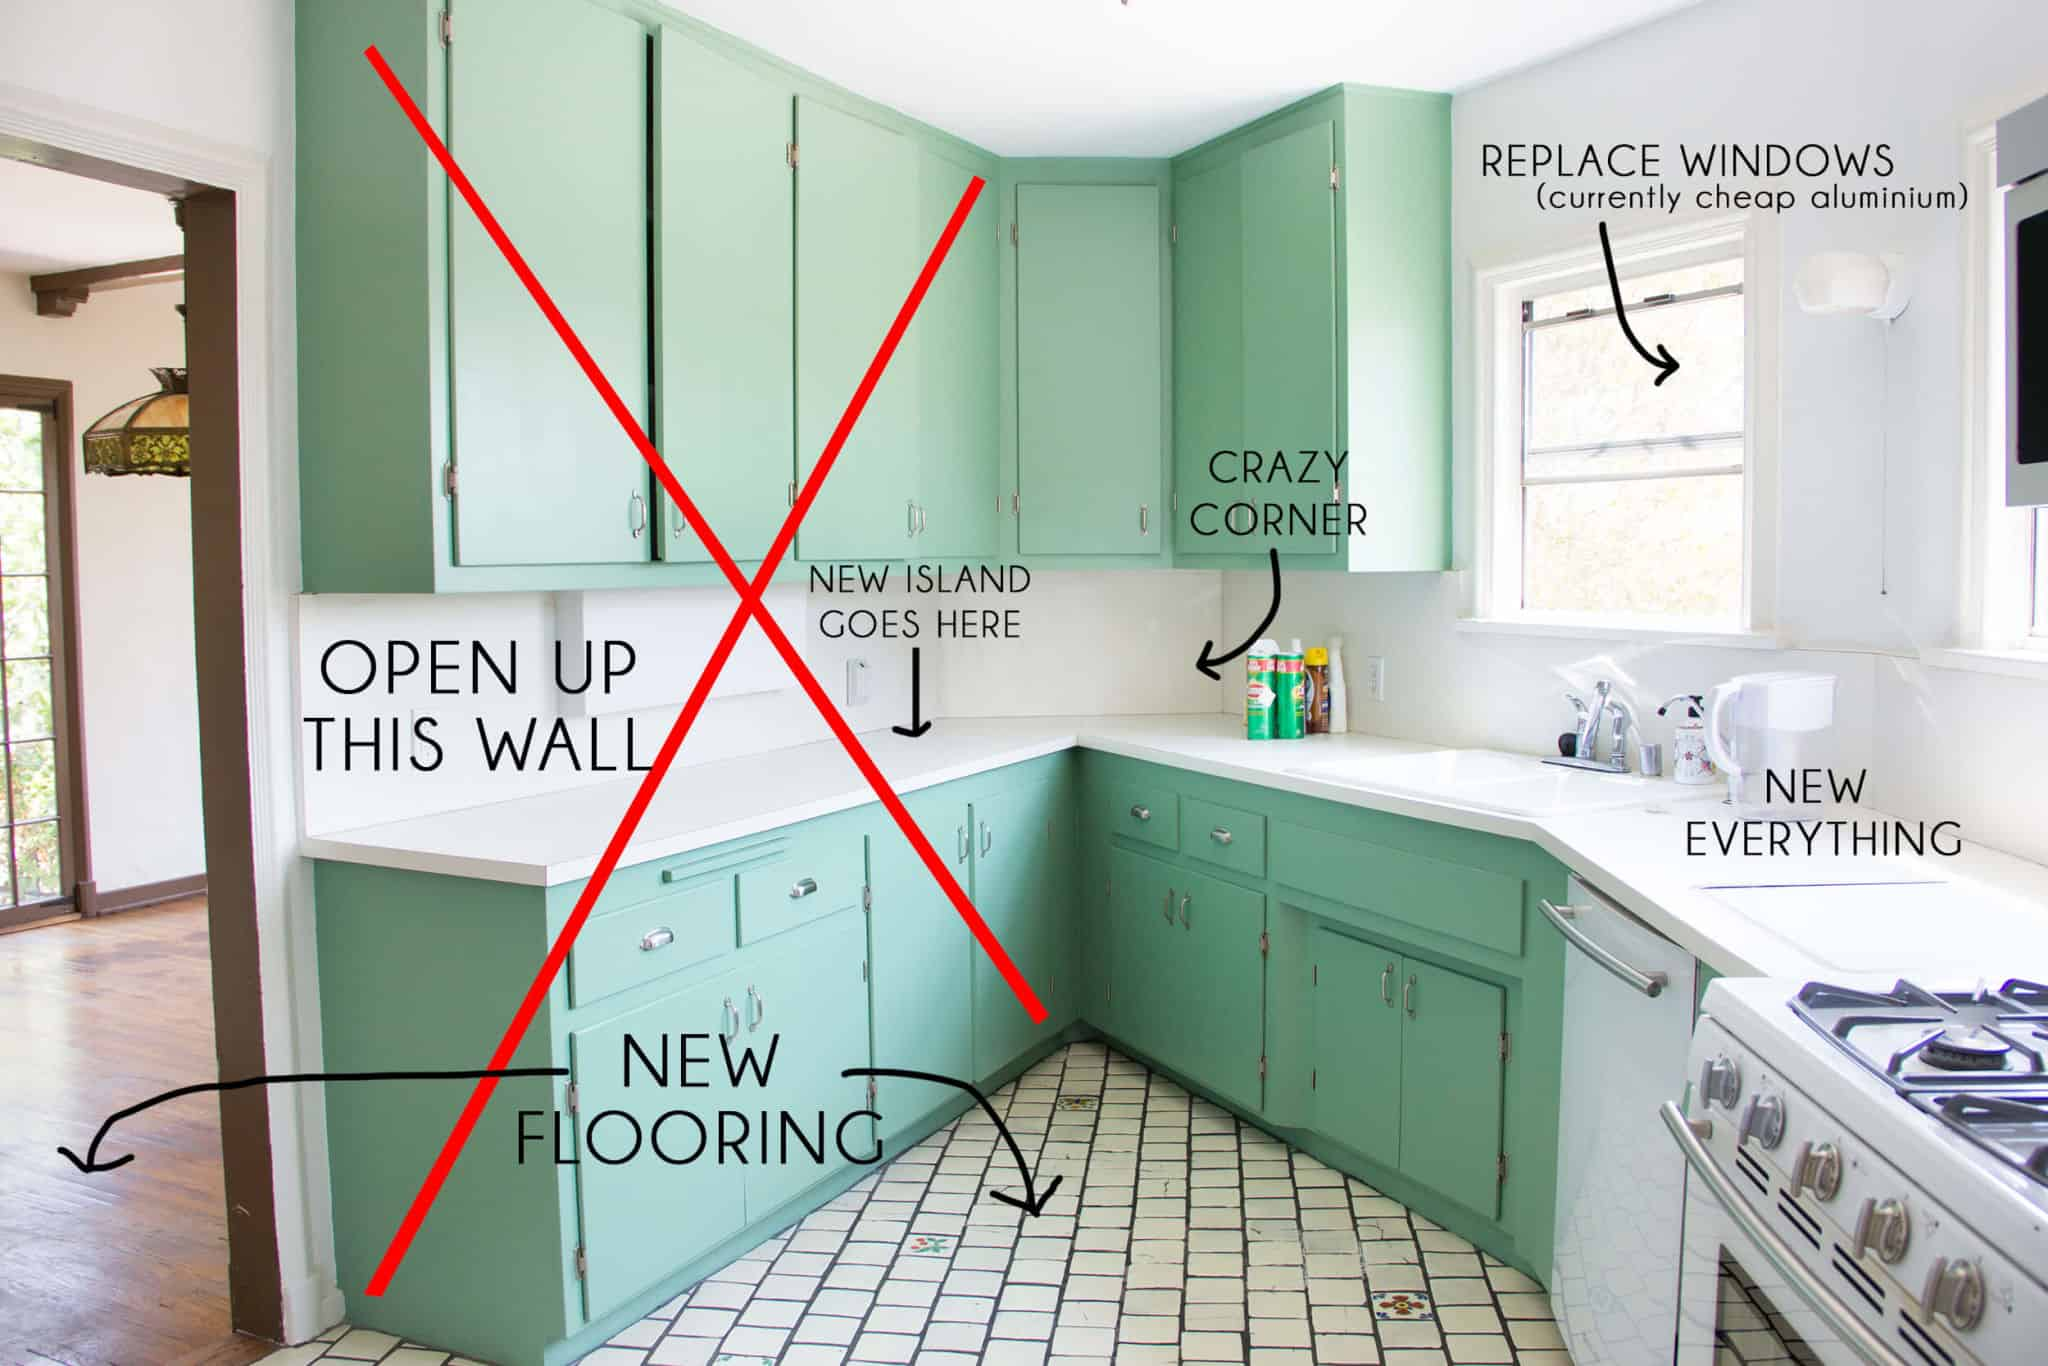 before-pic_demo-plan_text-overlay_kitchen